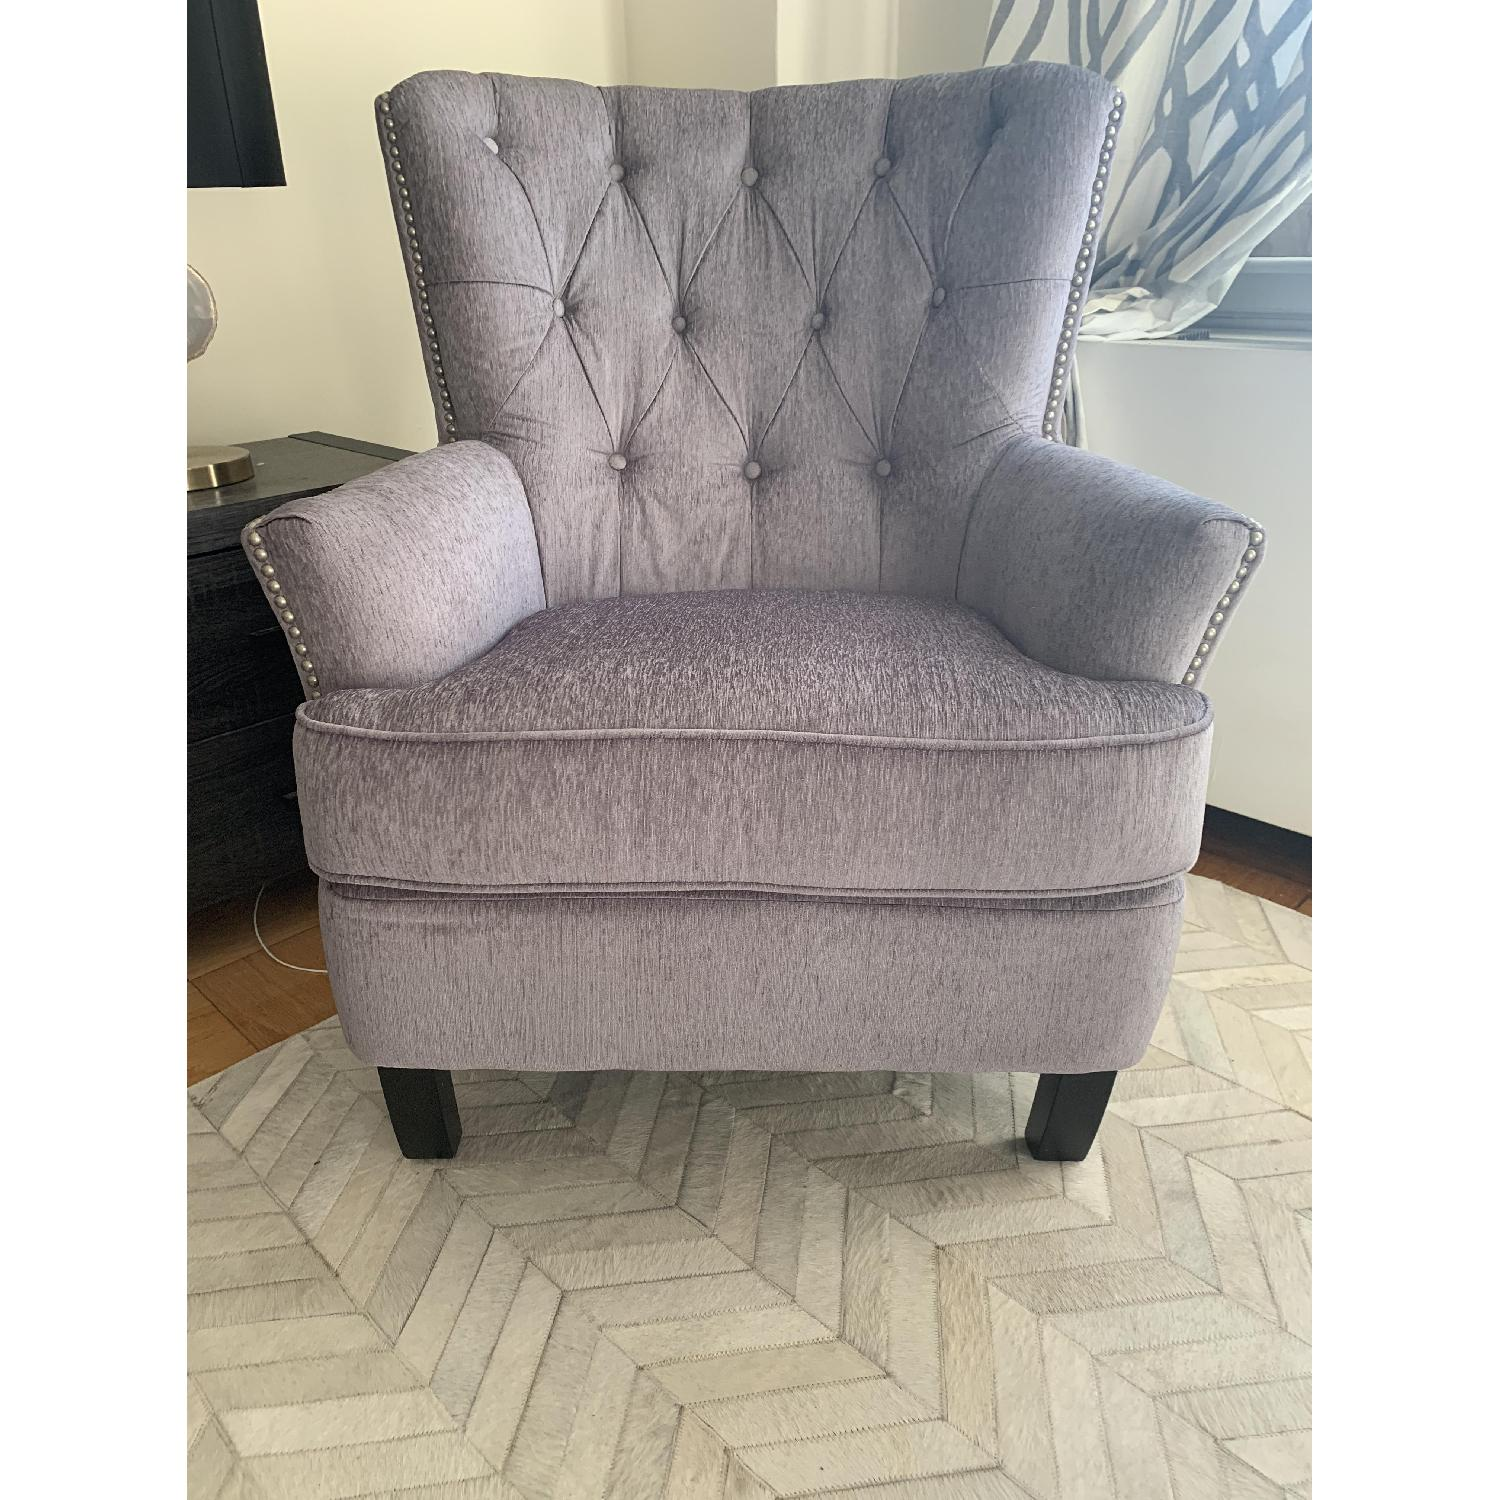 World Market Silver Accent Chair - image-1